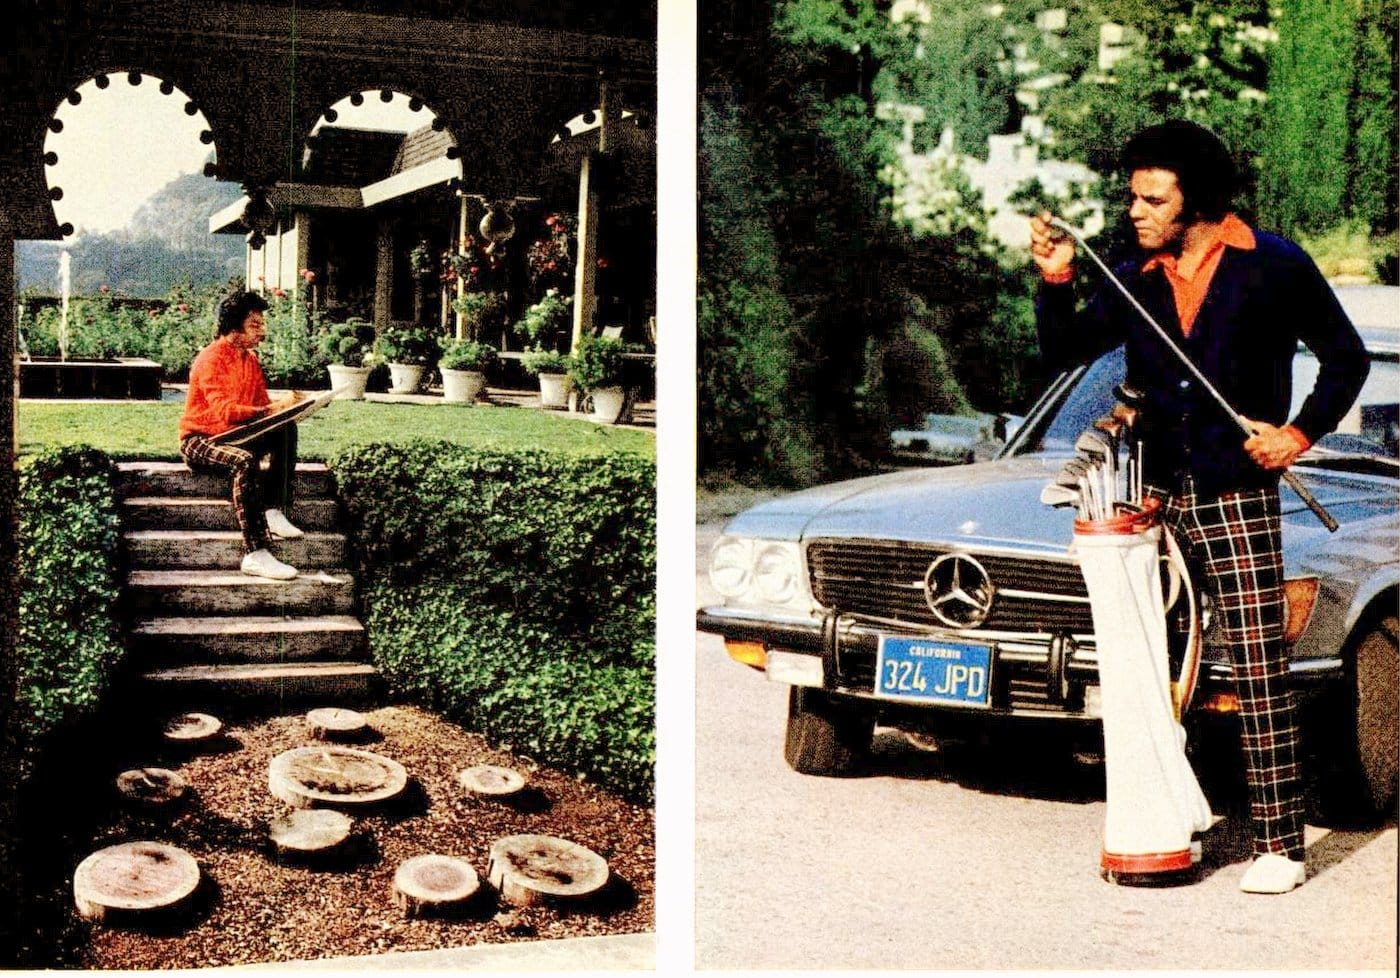 Johnny Mathis' Hollywood home in the 1970s (1)